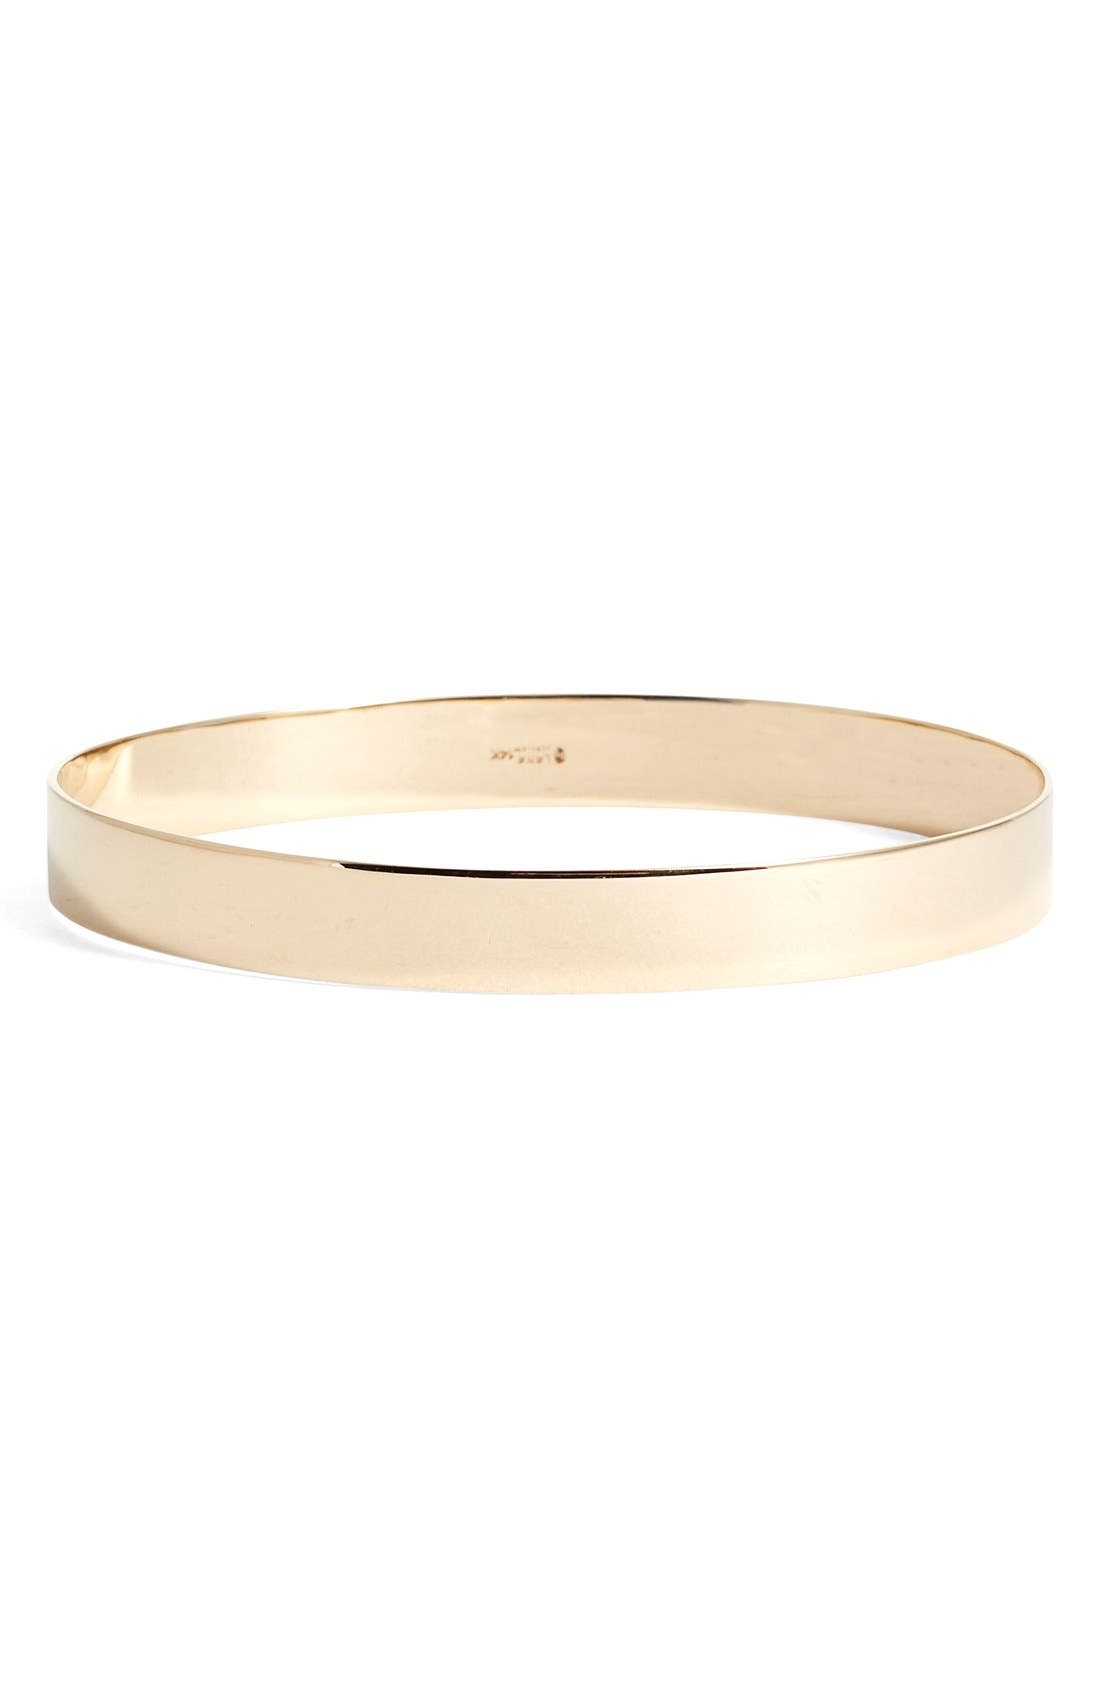 'Nude' Large Bangle,                         Main,                         color, Yellow Gold